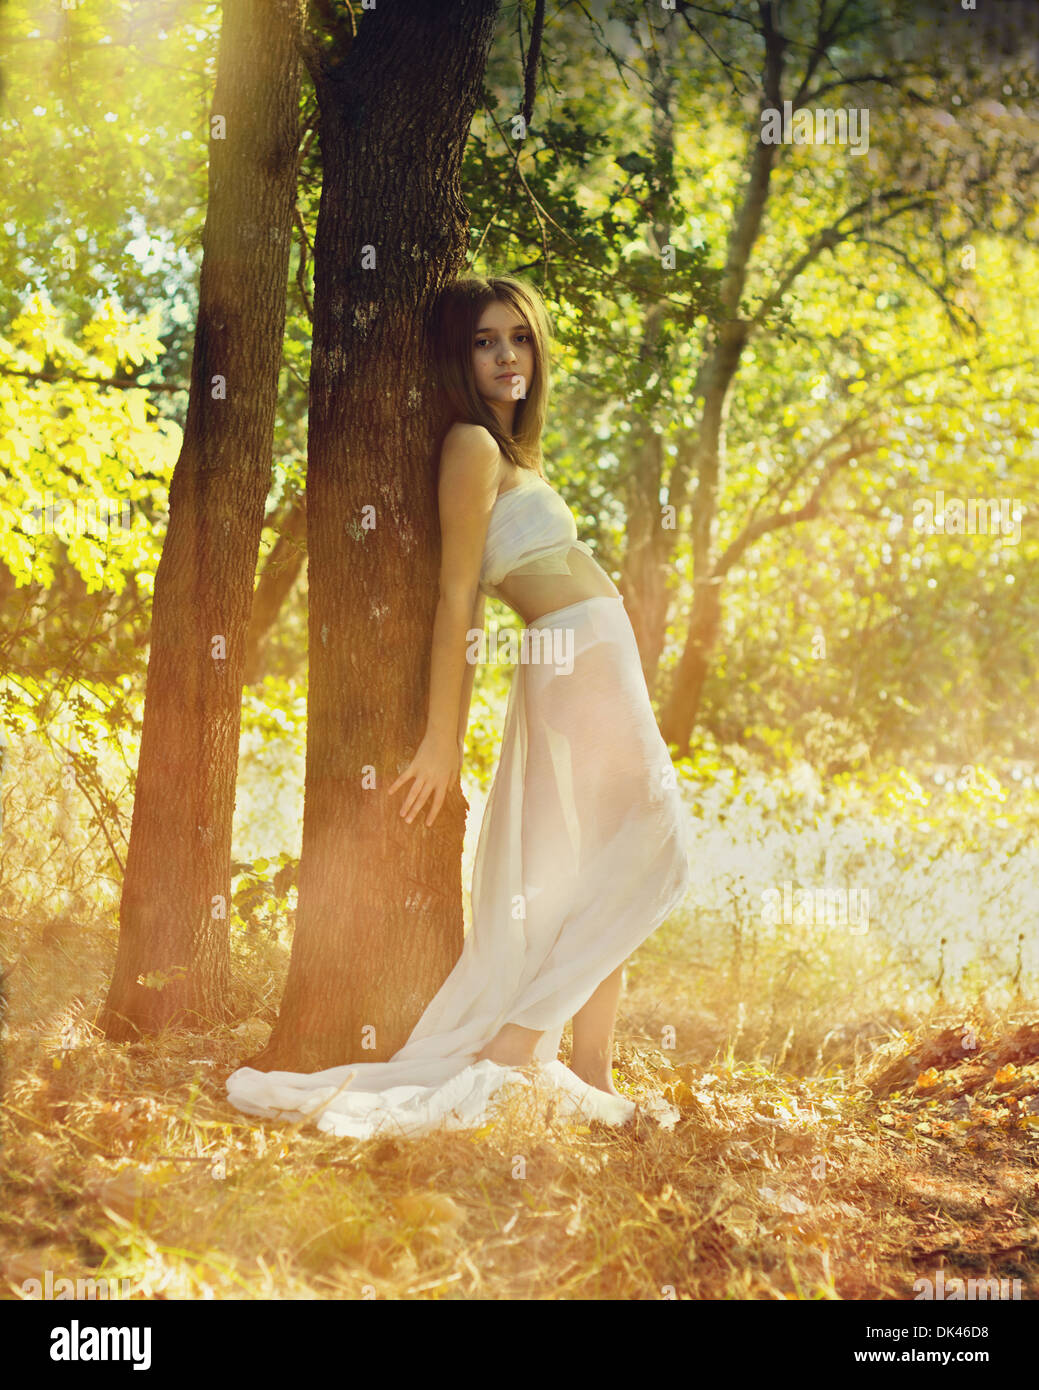 Young girl leaning on tree - Stock Image